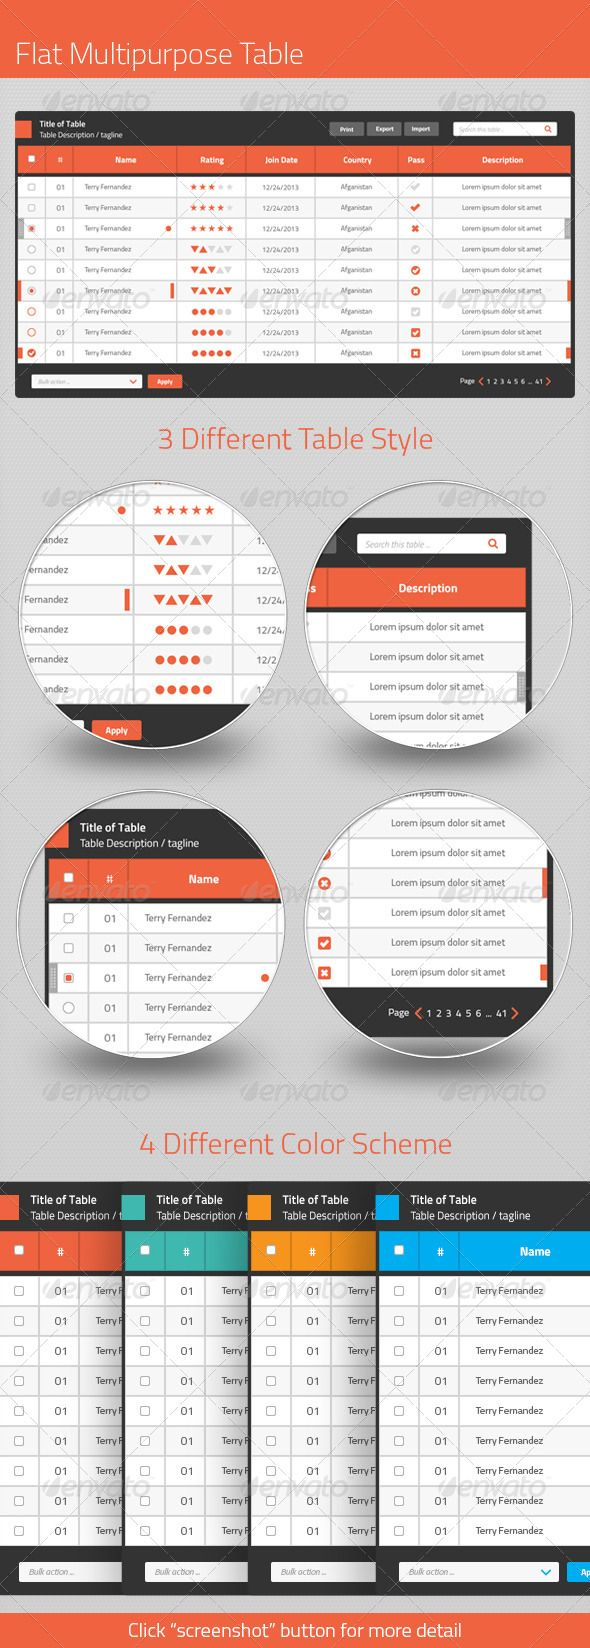 66 best Table Templates images on Pinterest | Font logo, Table ...